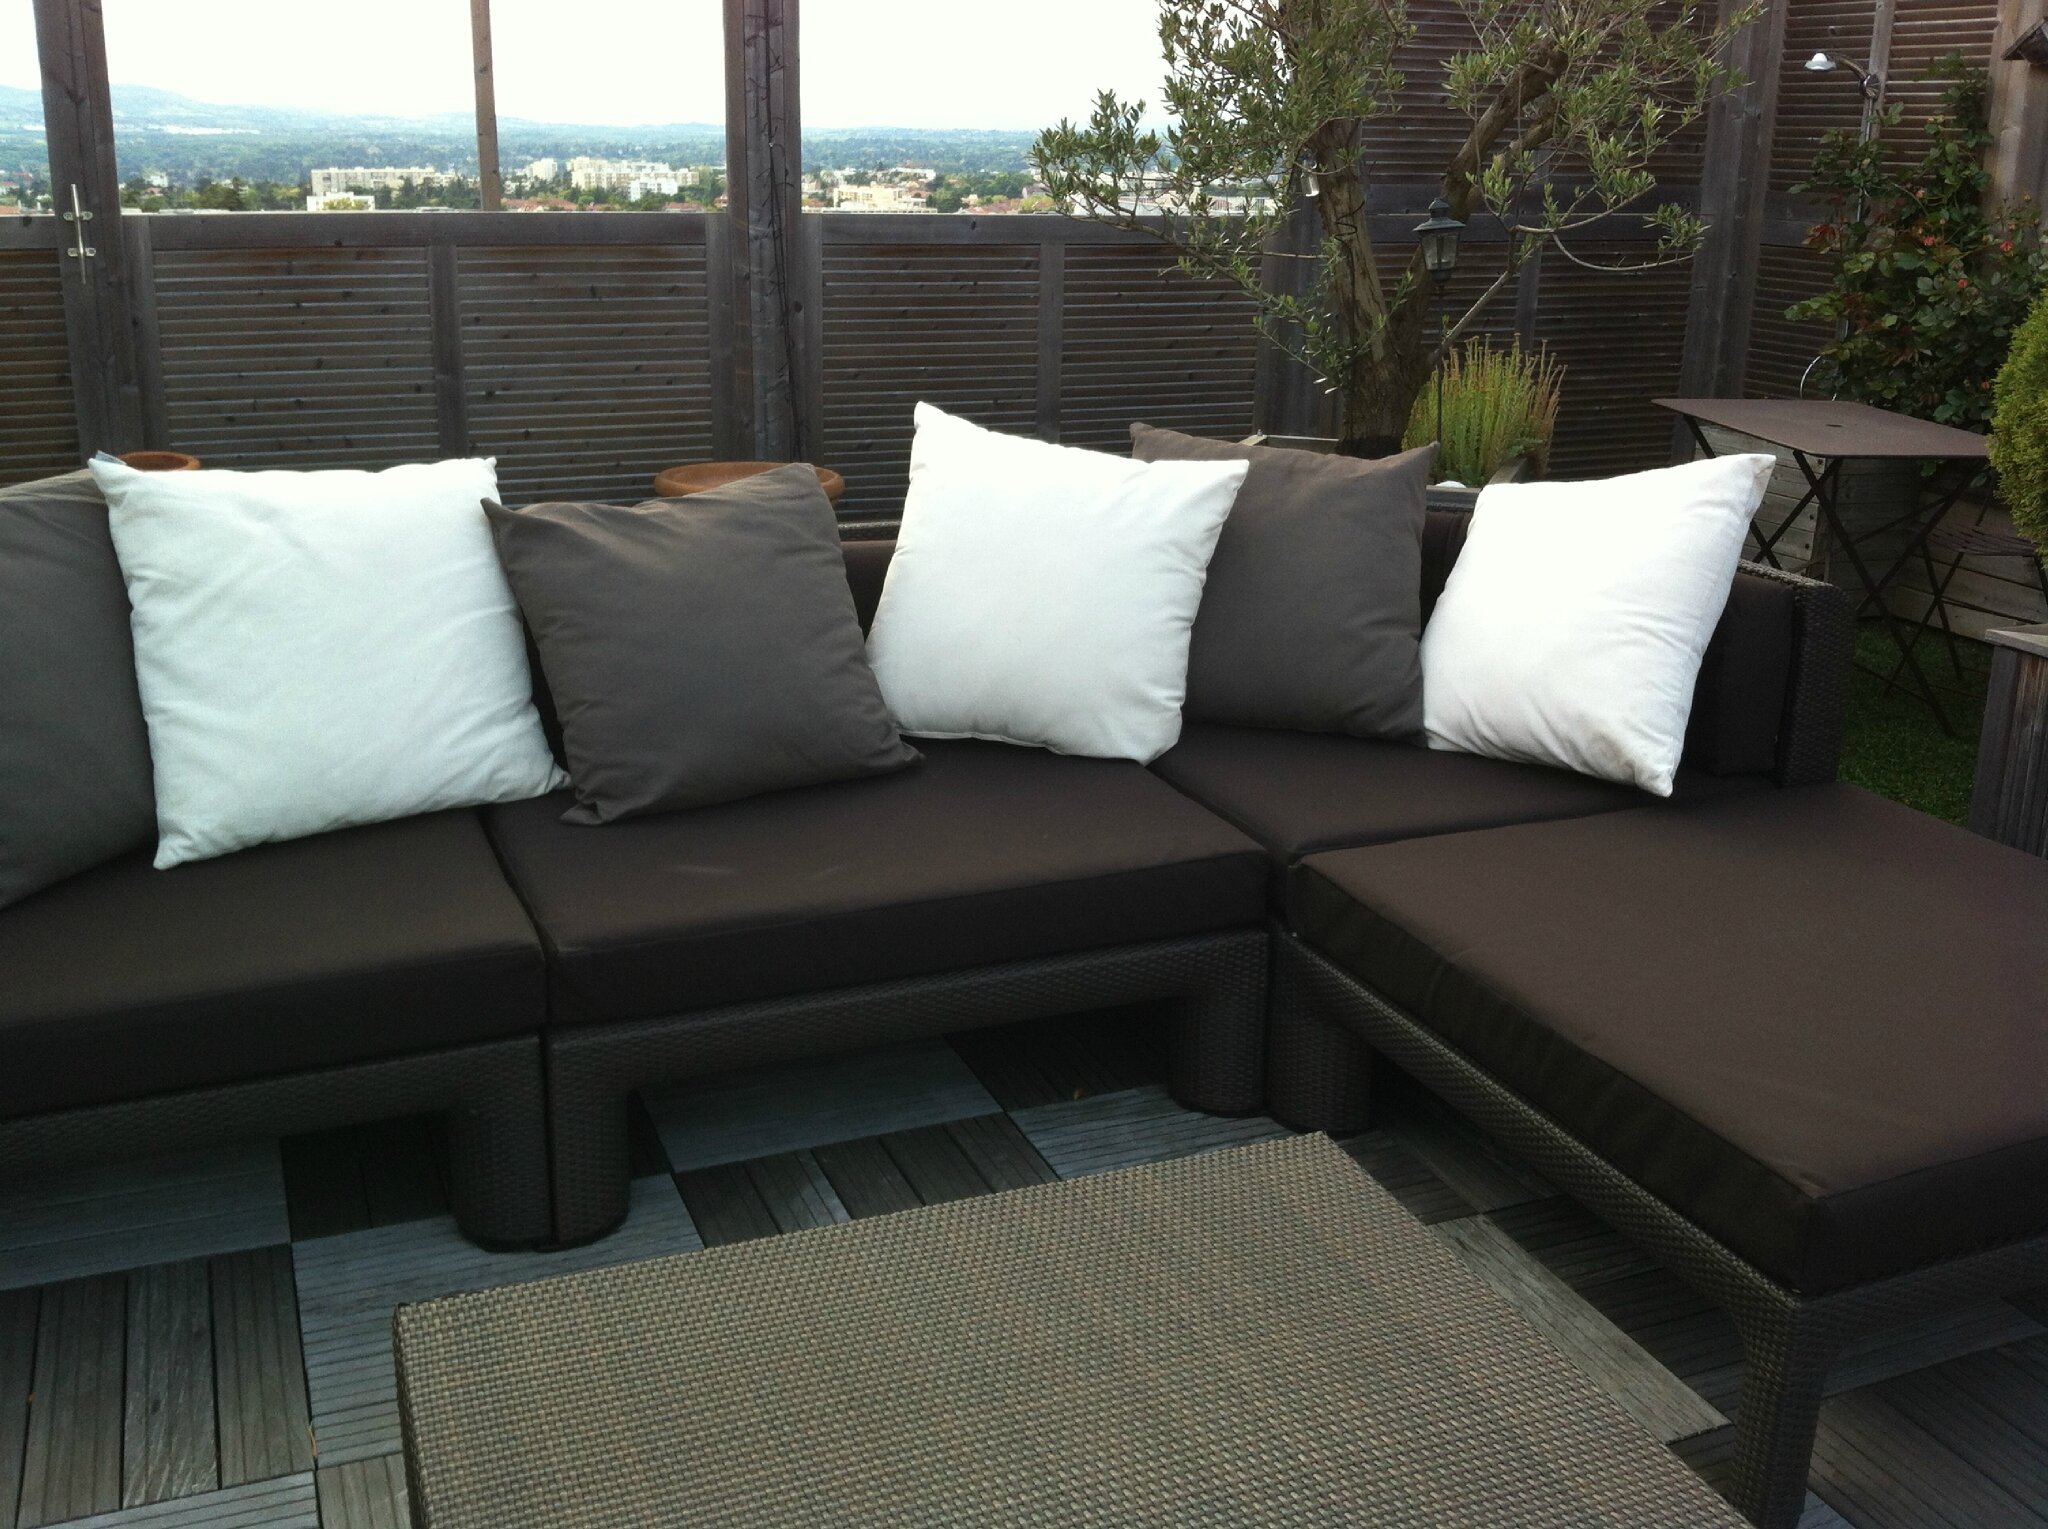 Housse canape sur terrasse atelier virginie morel at home for Housse de coussin canape